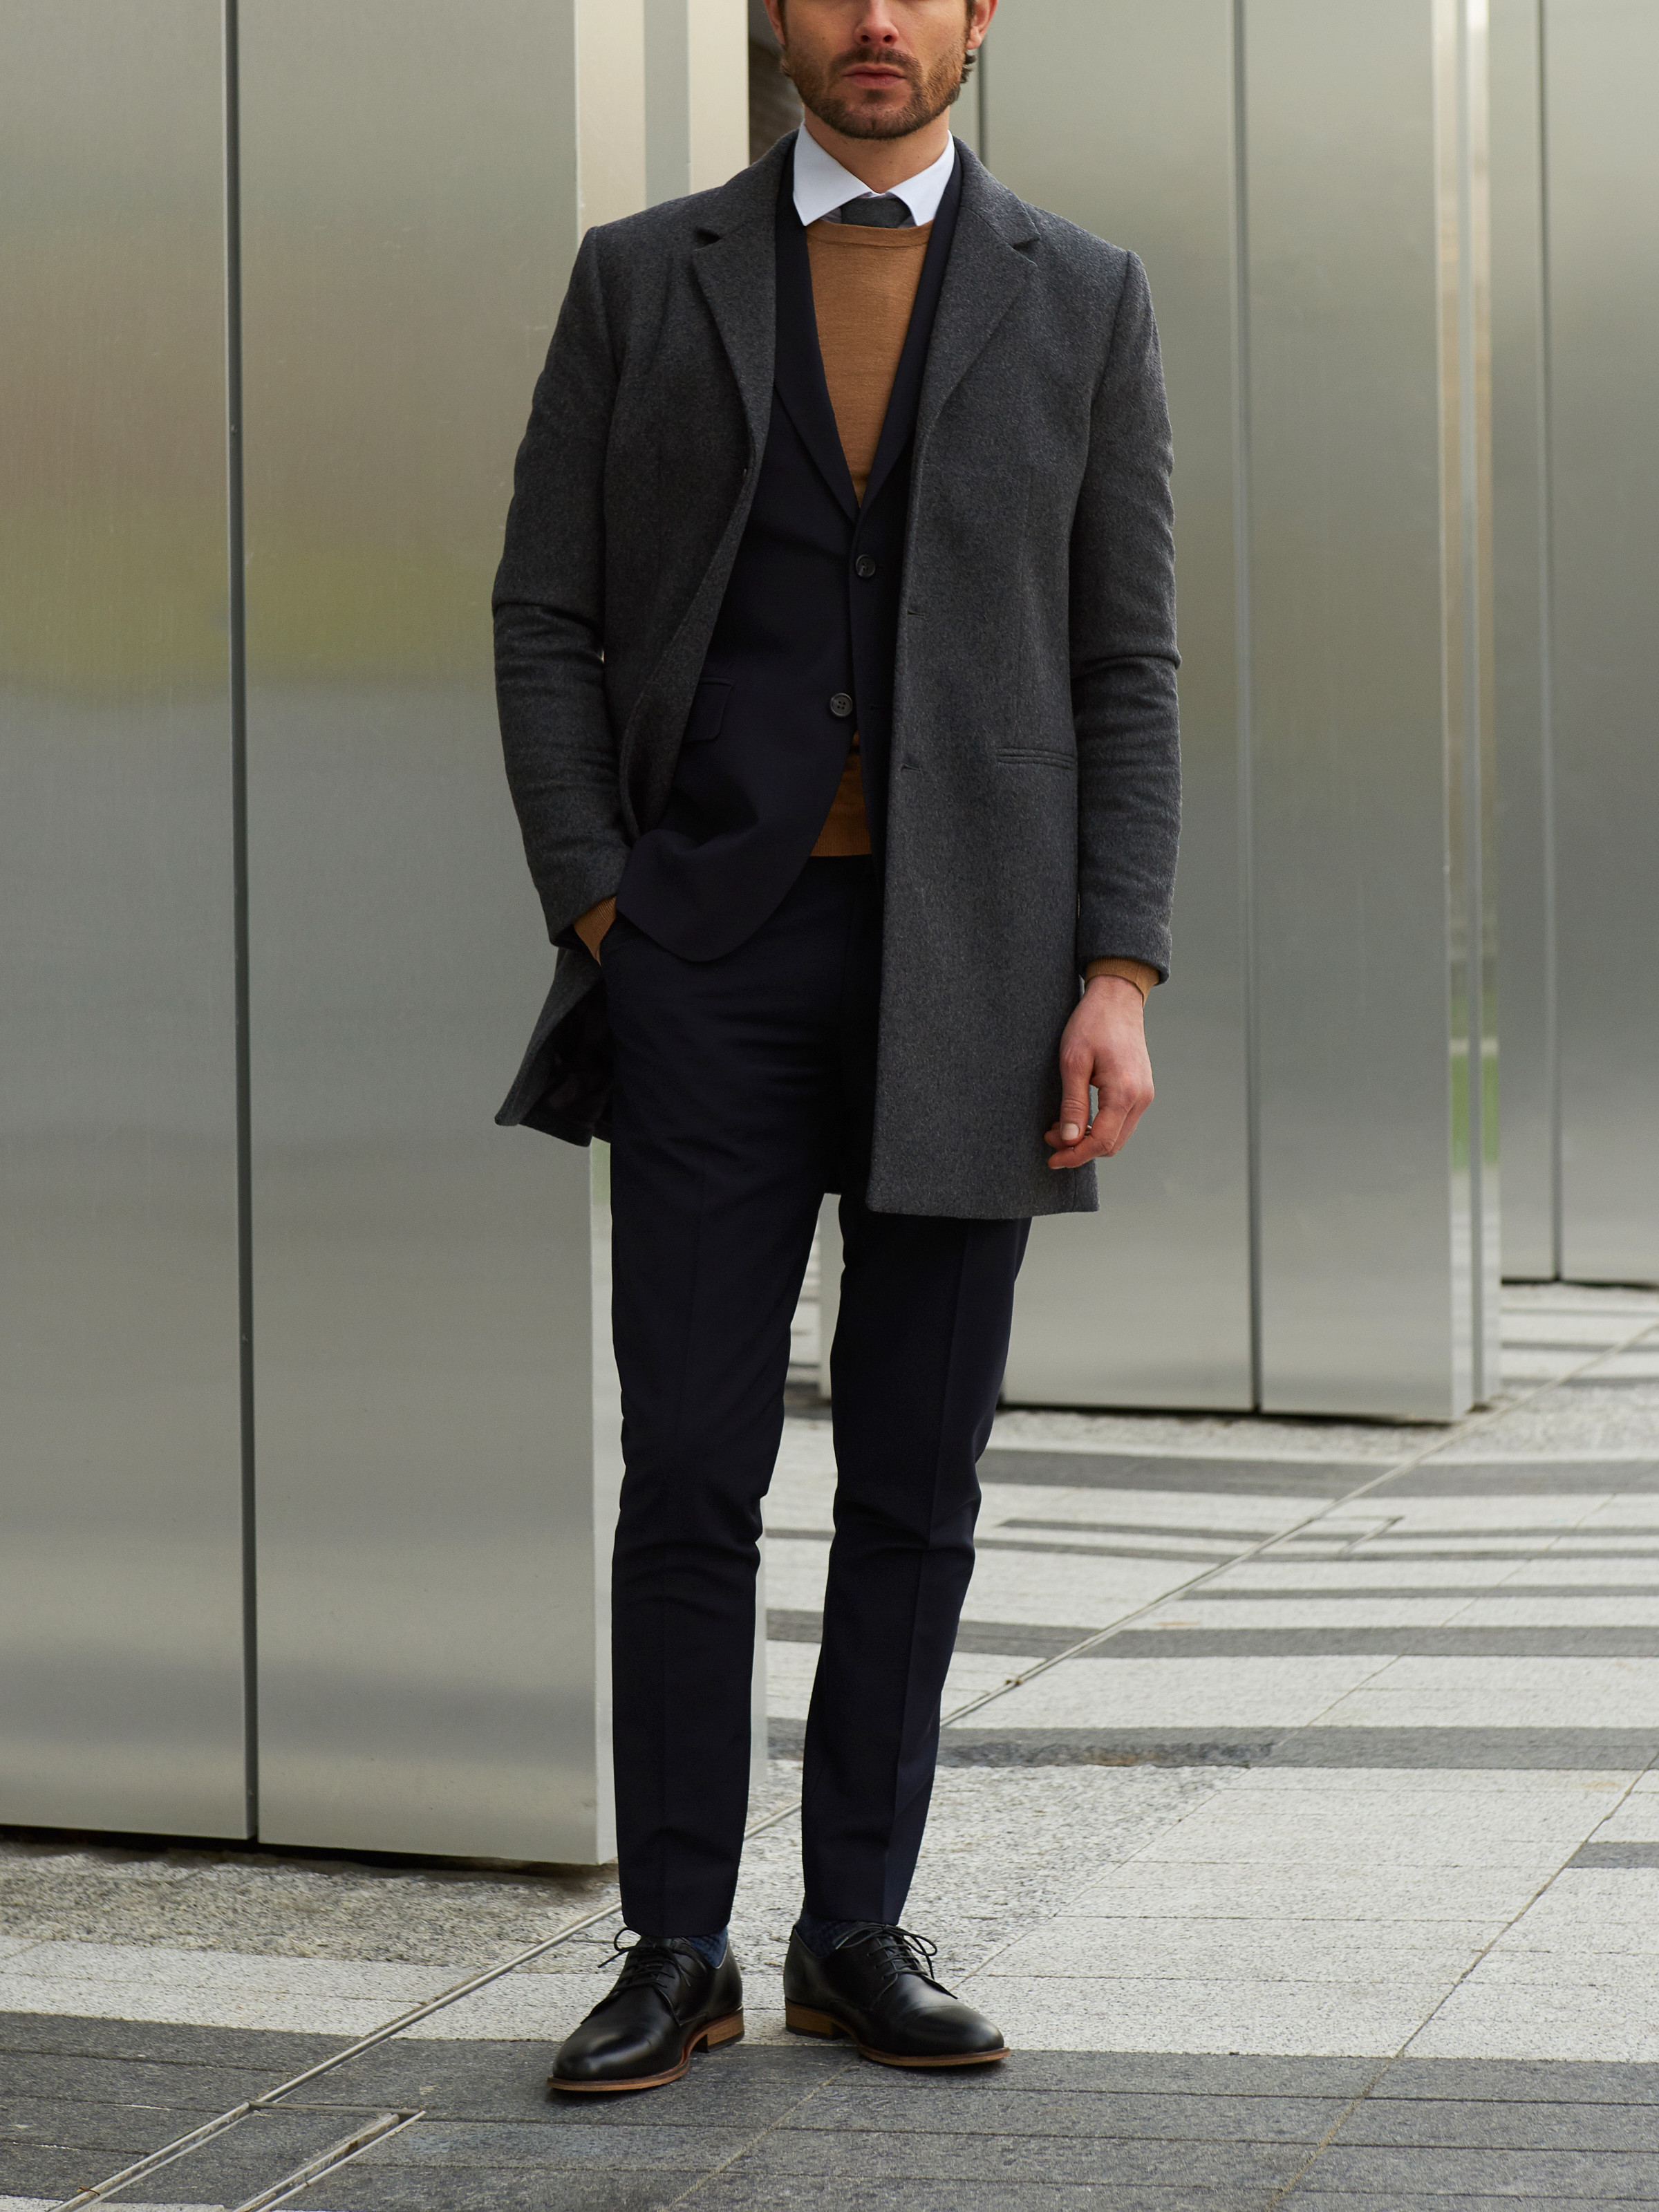 Men's outfit idea for 2021 with single-breasted overcoat, pale-colored crew neck sweater, white dress shirt, navy dress pants, oxford / derby shoes. Suitable for fall and winter.